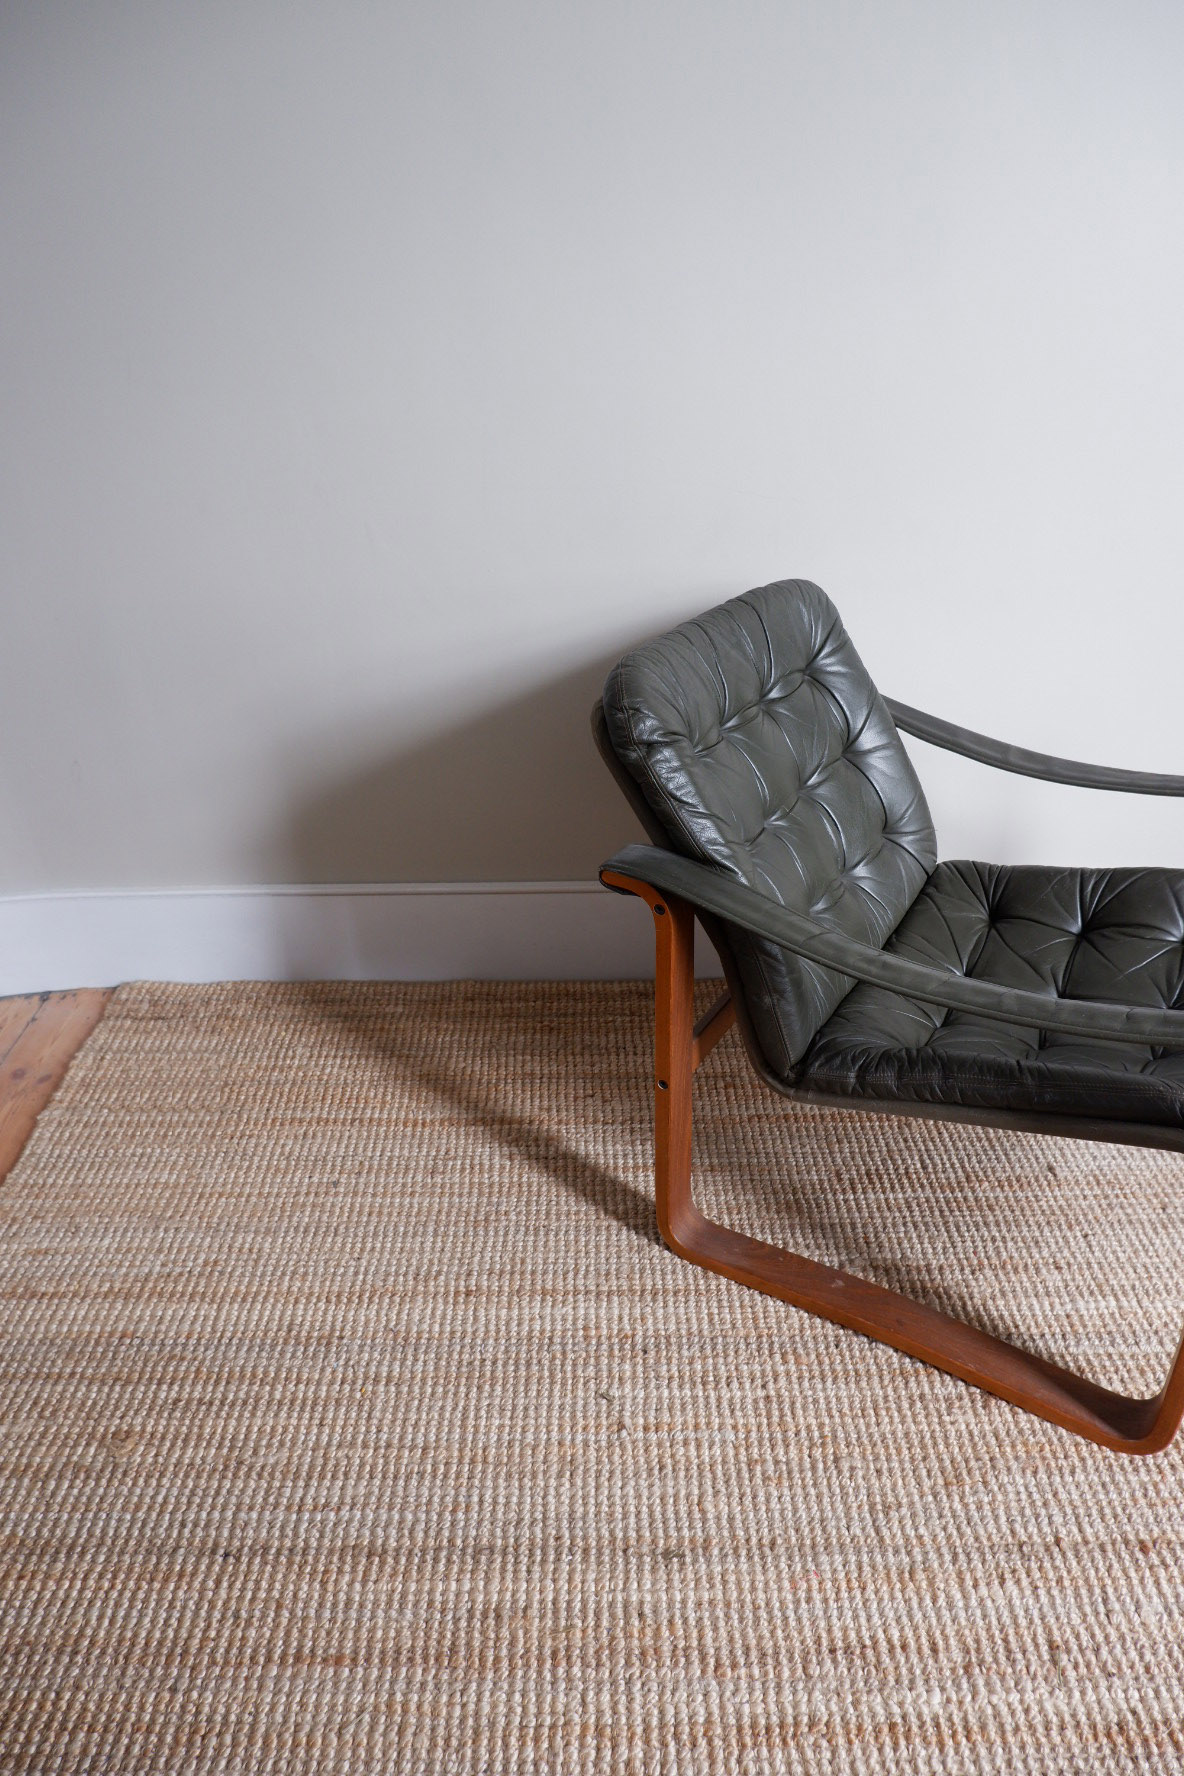 leather chair on mat.JPG